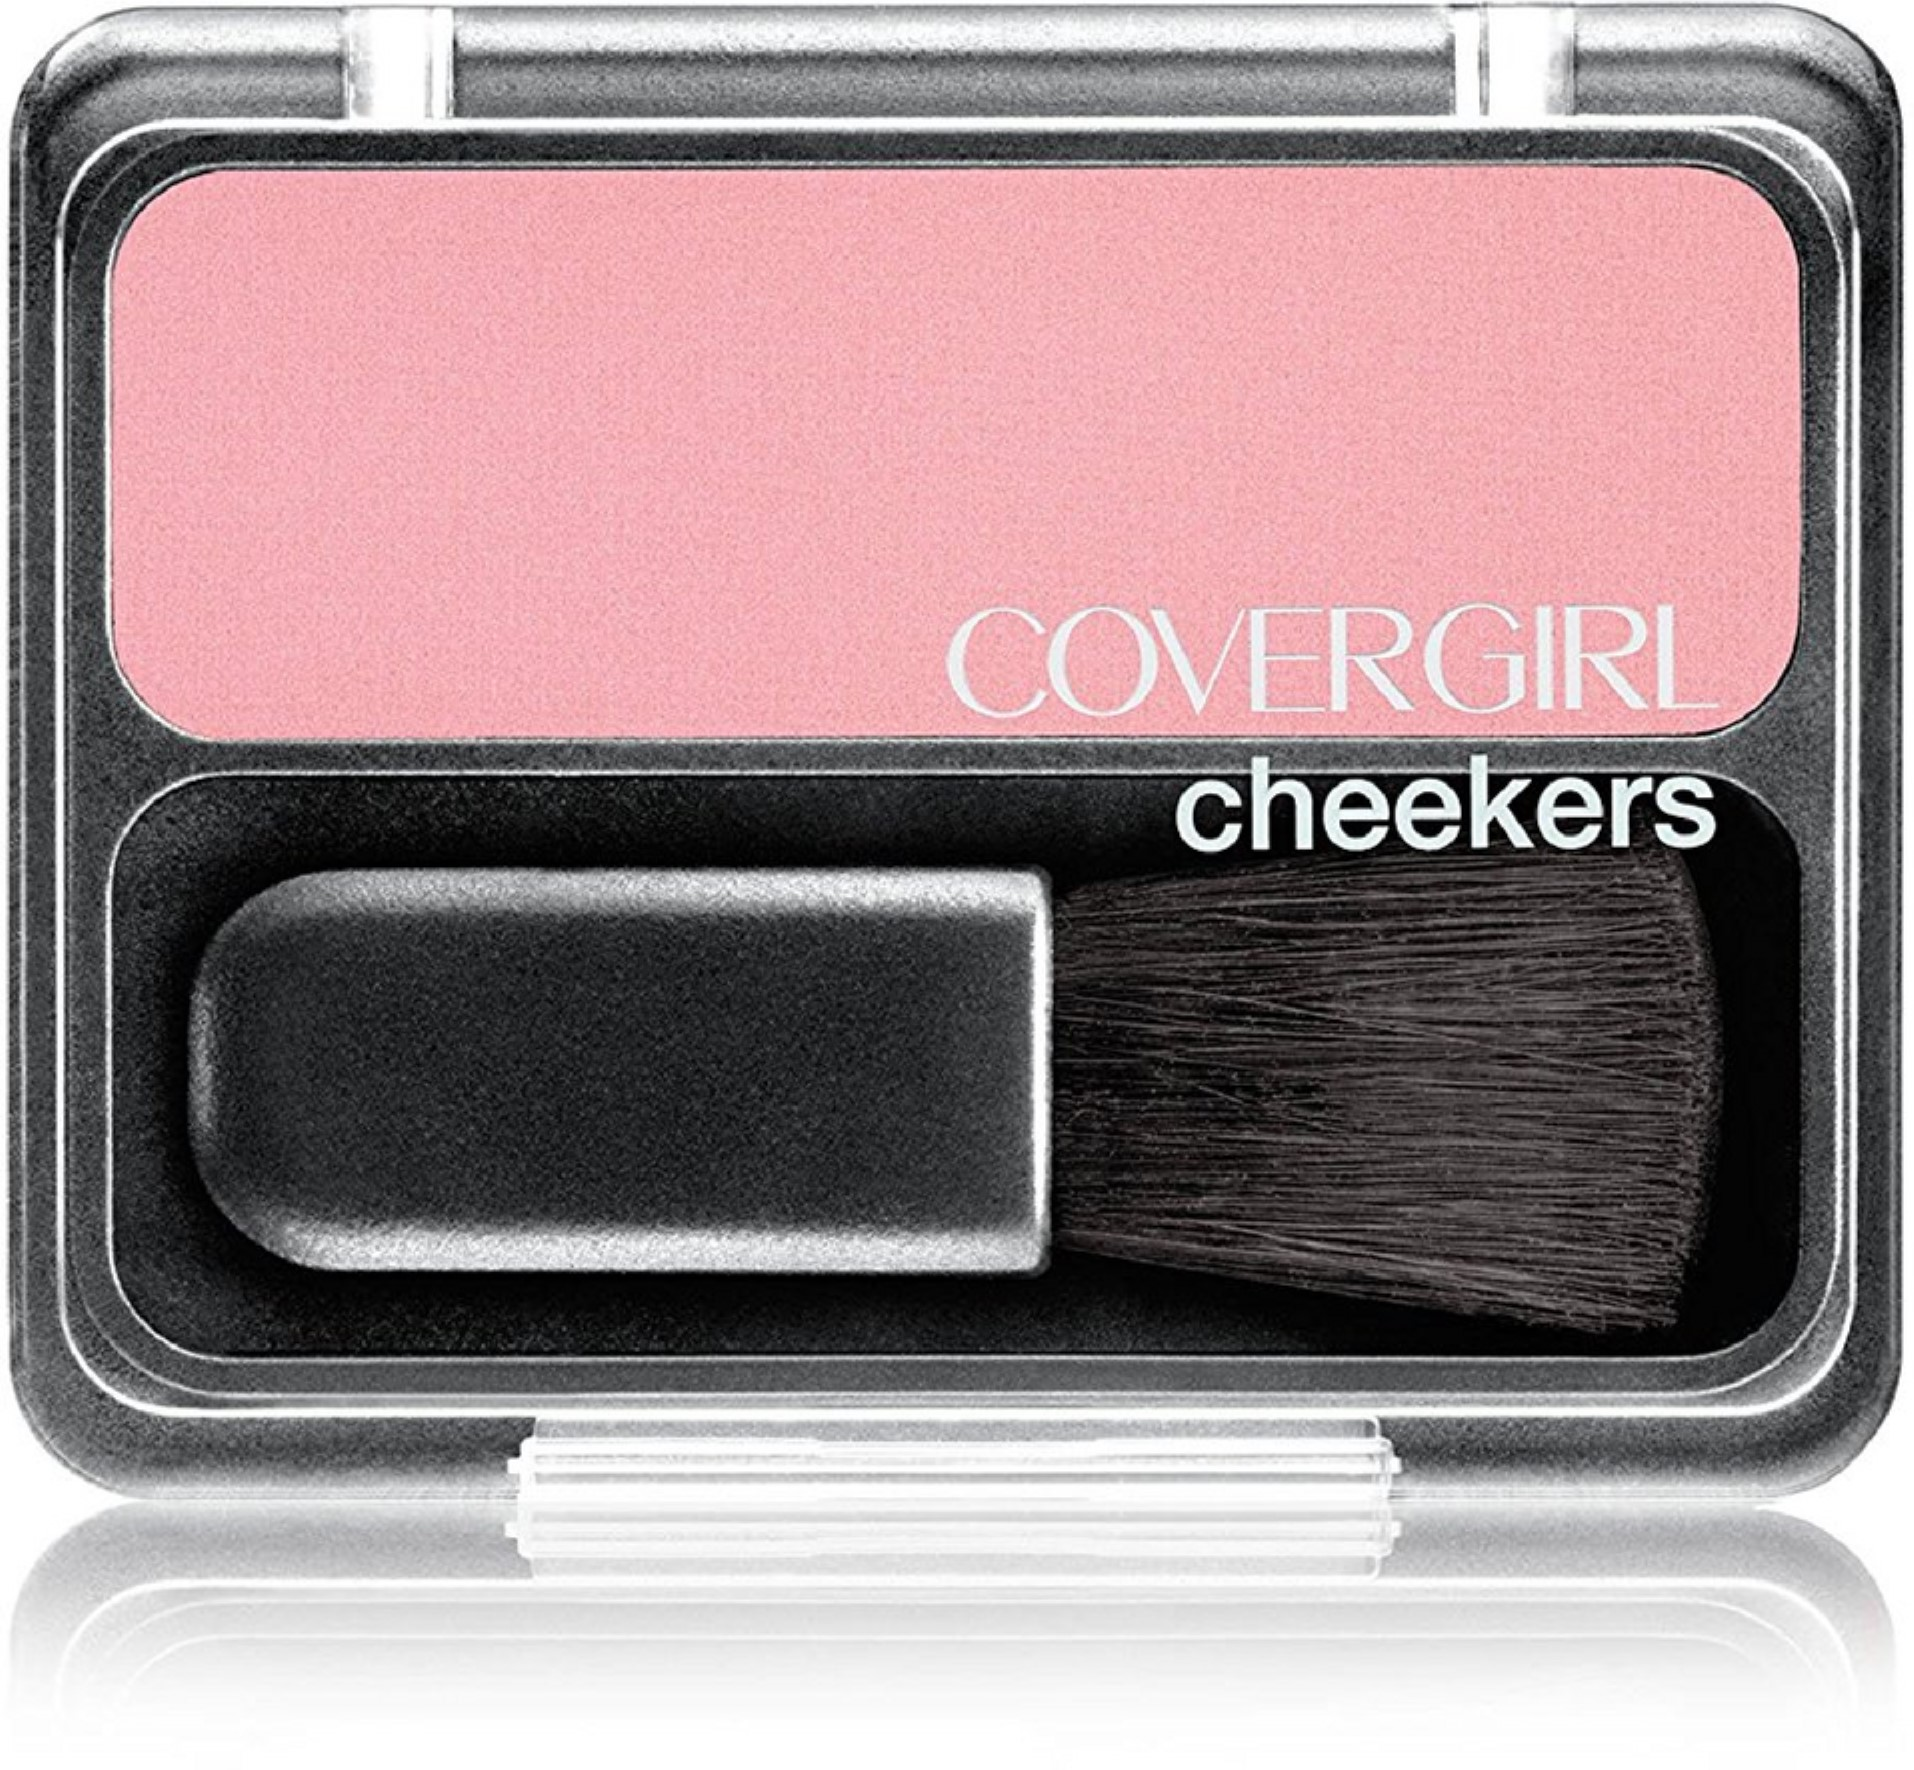 CoverGirl Cheekers Blush, Natural Rose [148] 0.12 oz